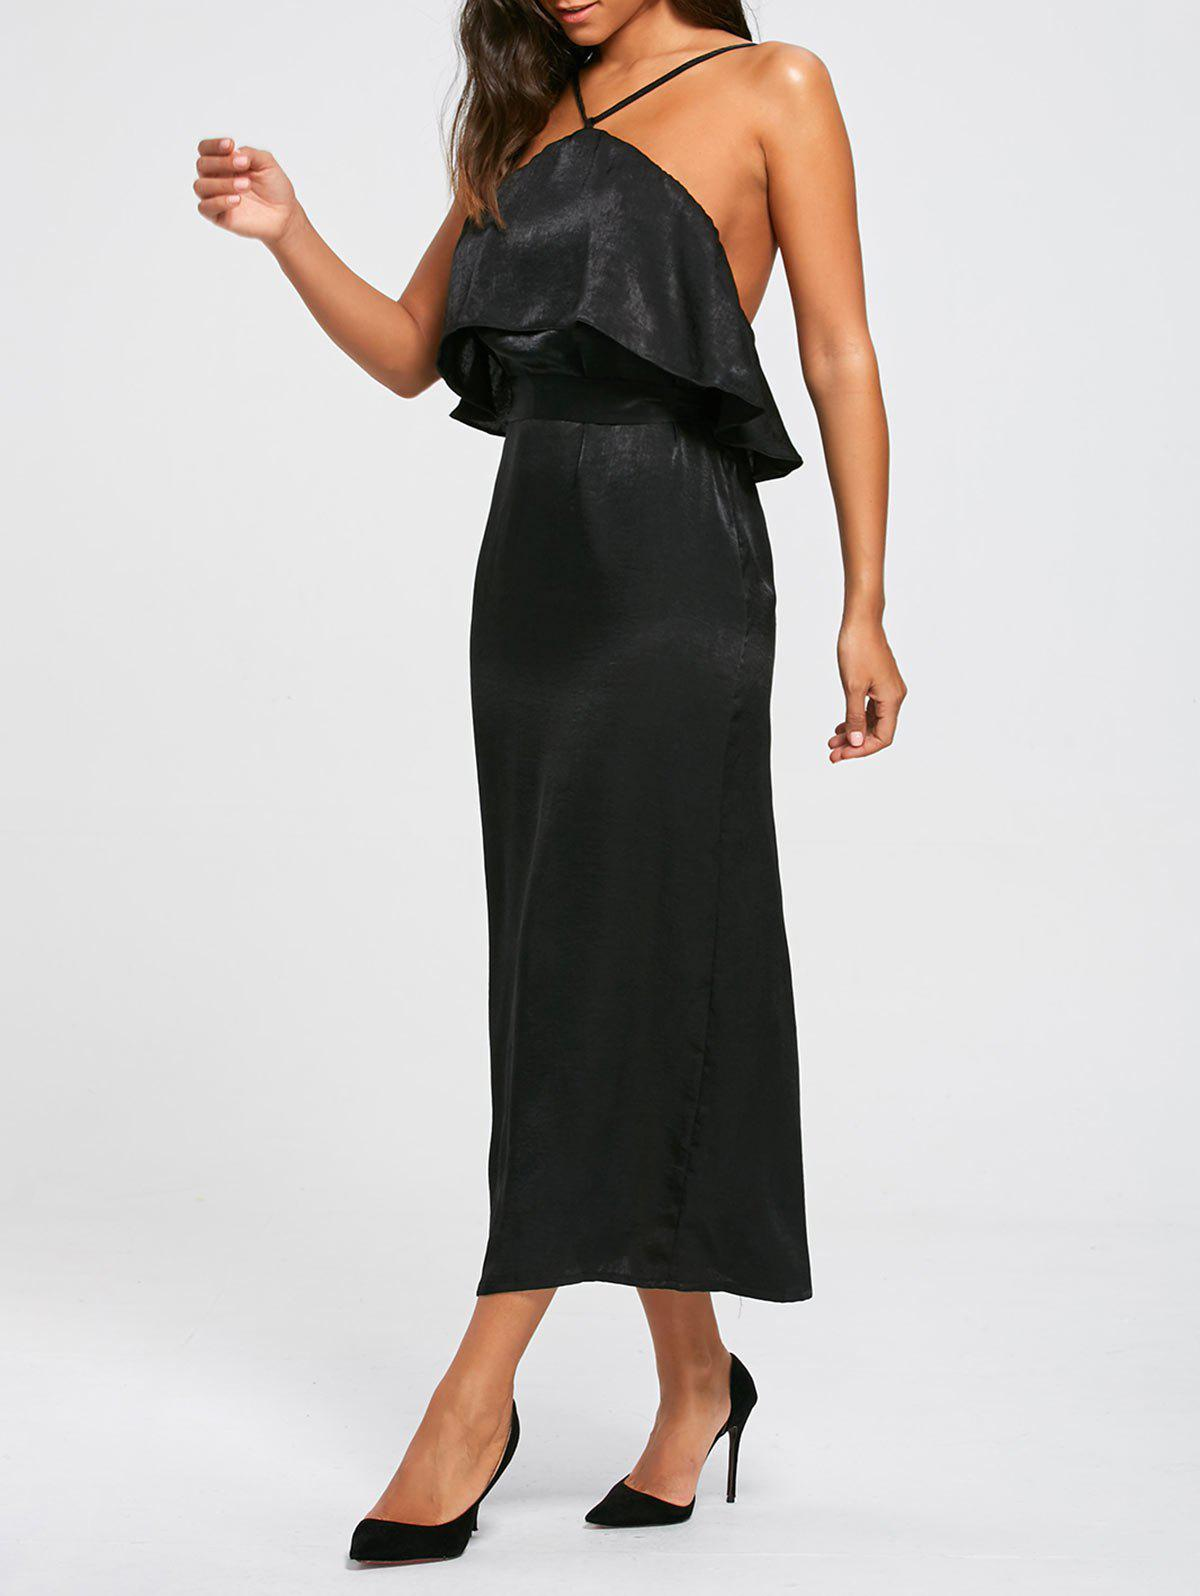 High Slit Long Sleeveless Bodycon Popover Dress - BLACK L